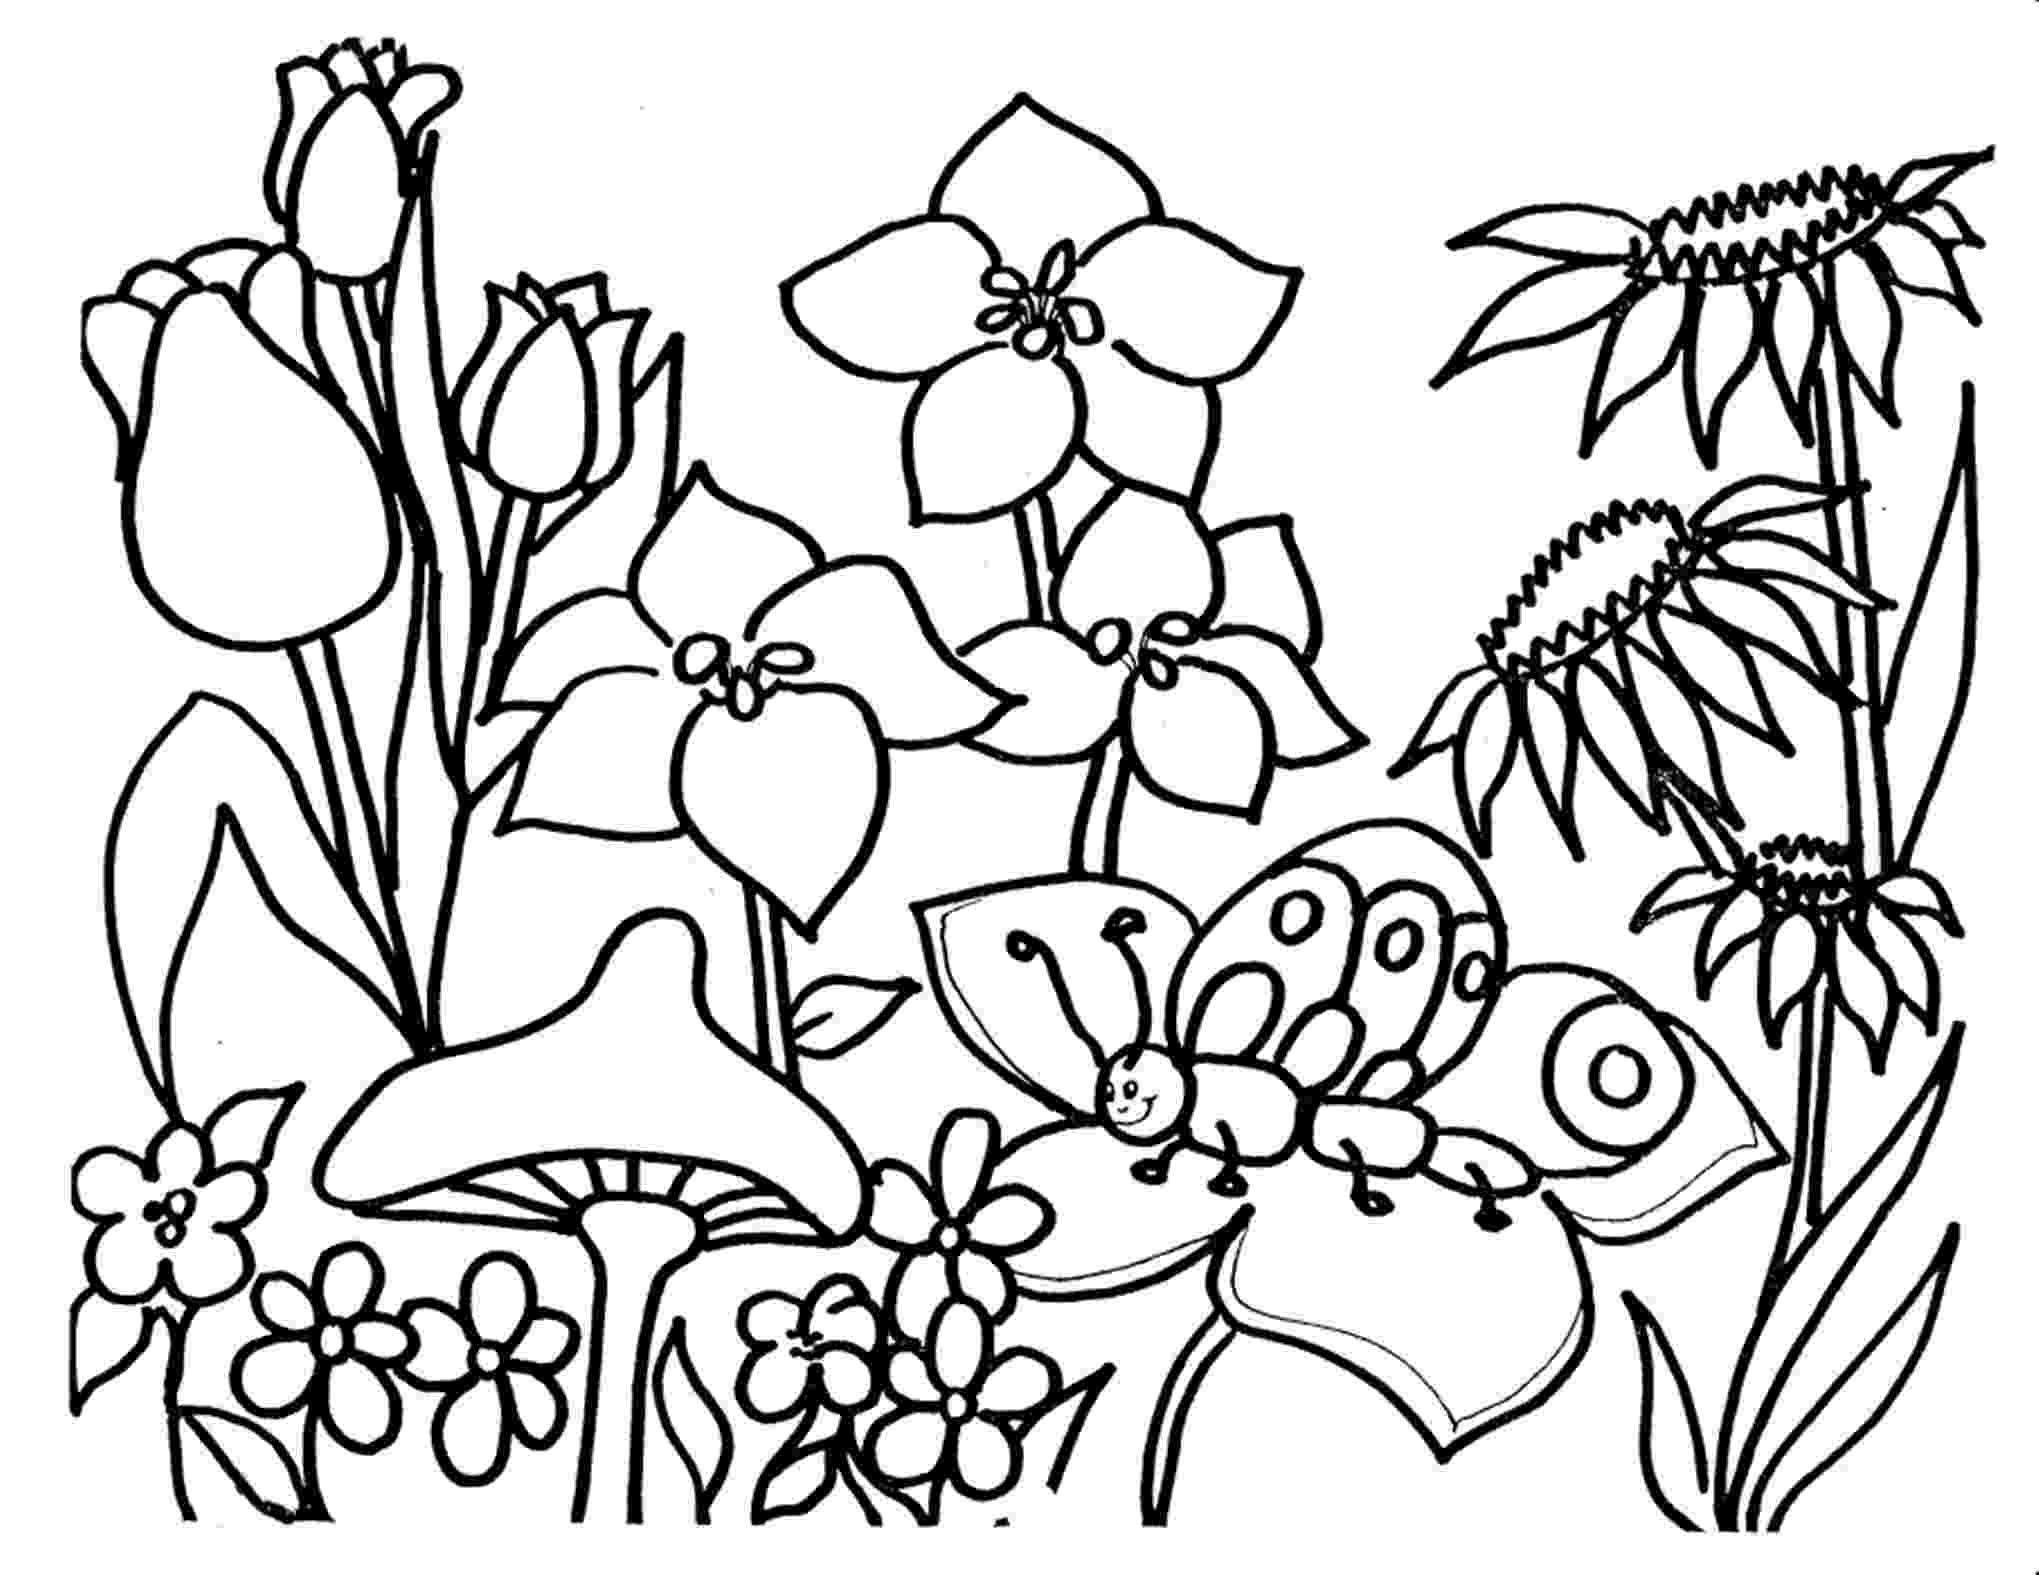 free coloring pictures of flowers free printable flower coloring pages for kids best of free pictures coloring flowers